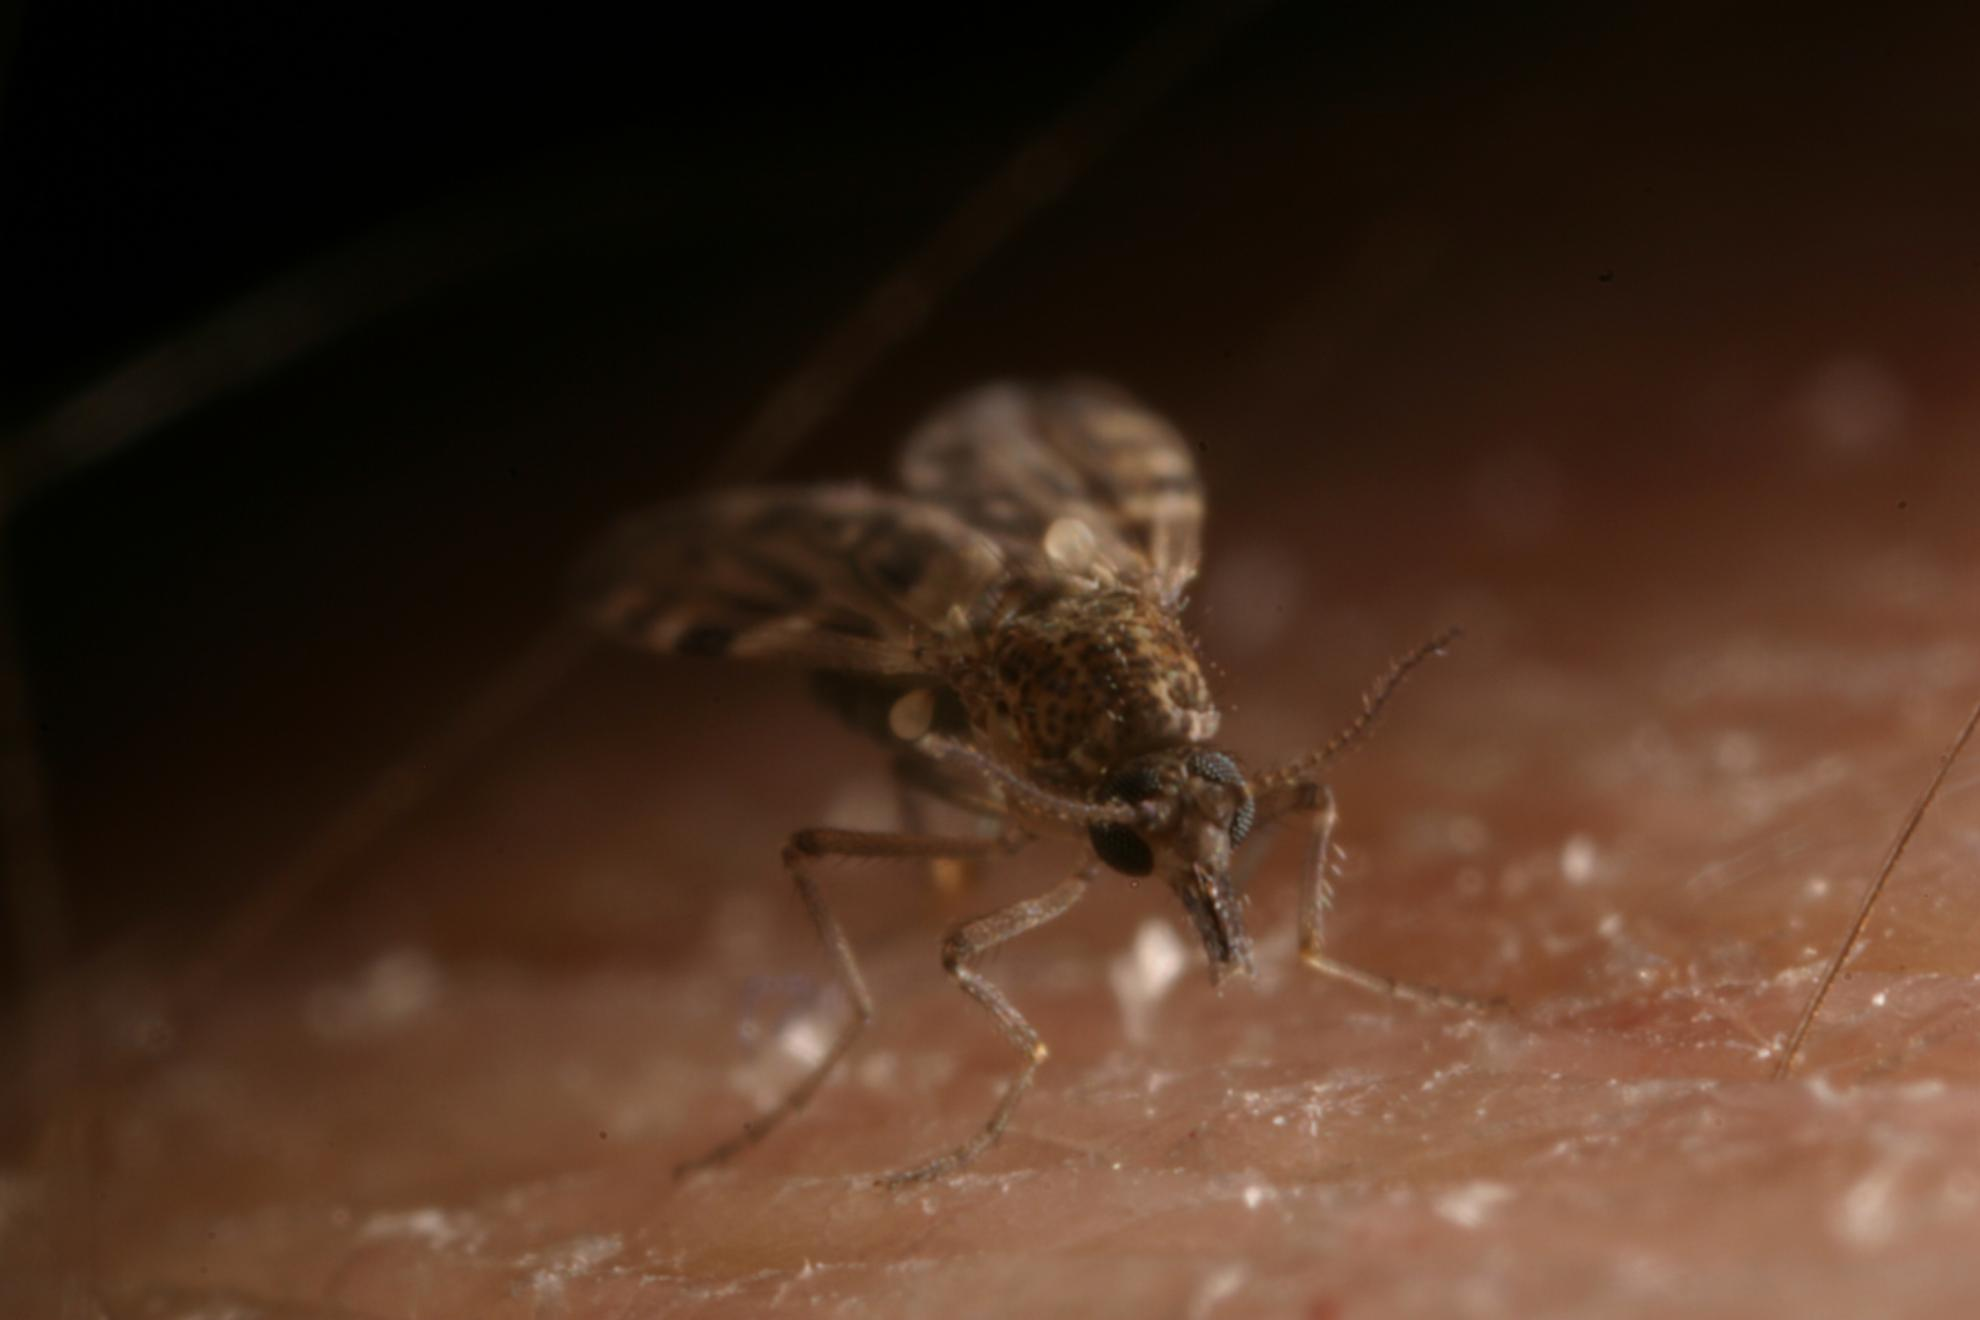 Culicoides sonorensis